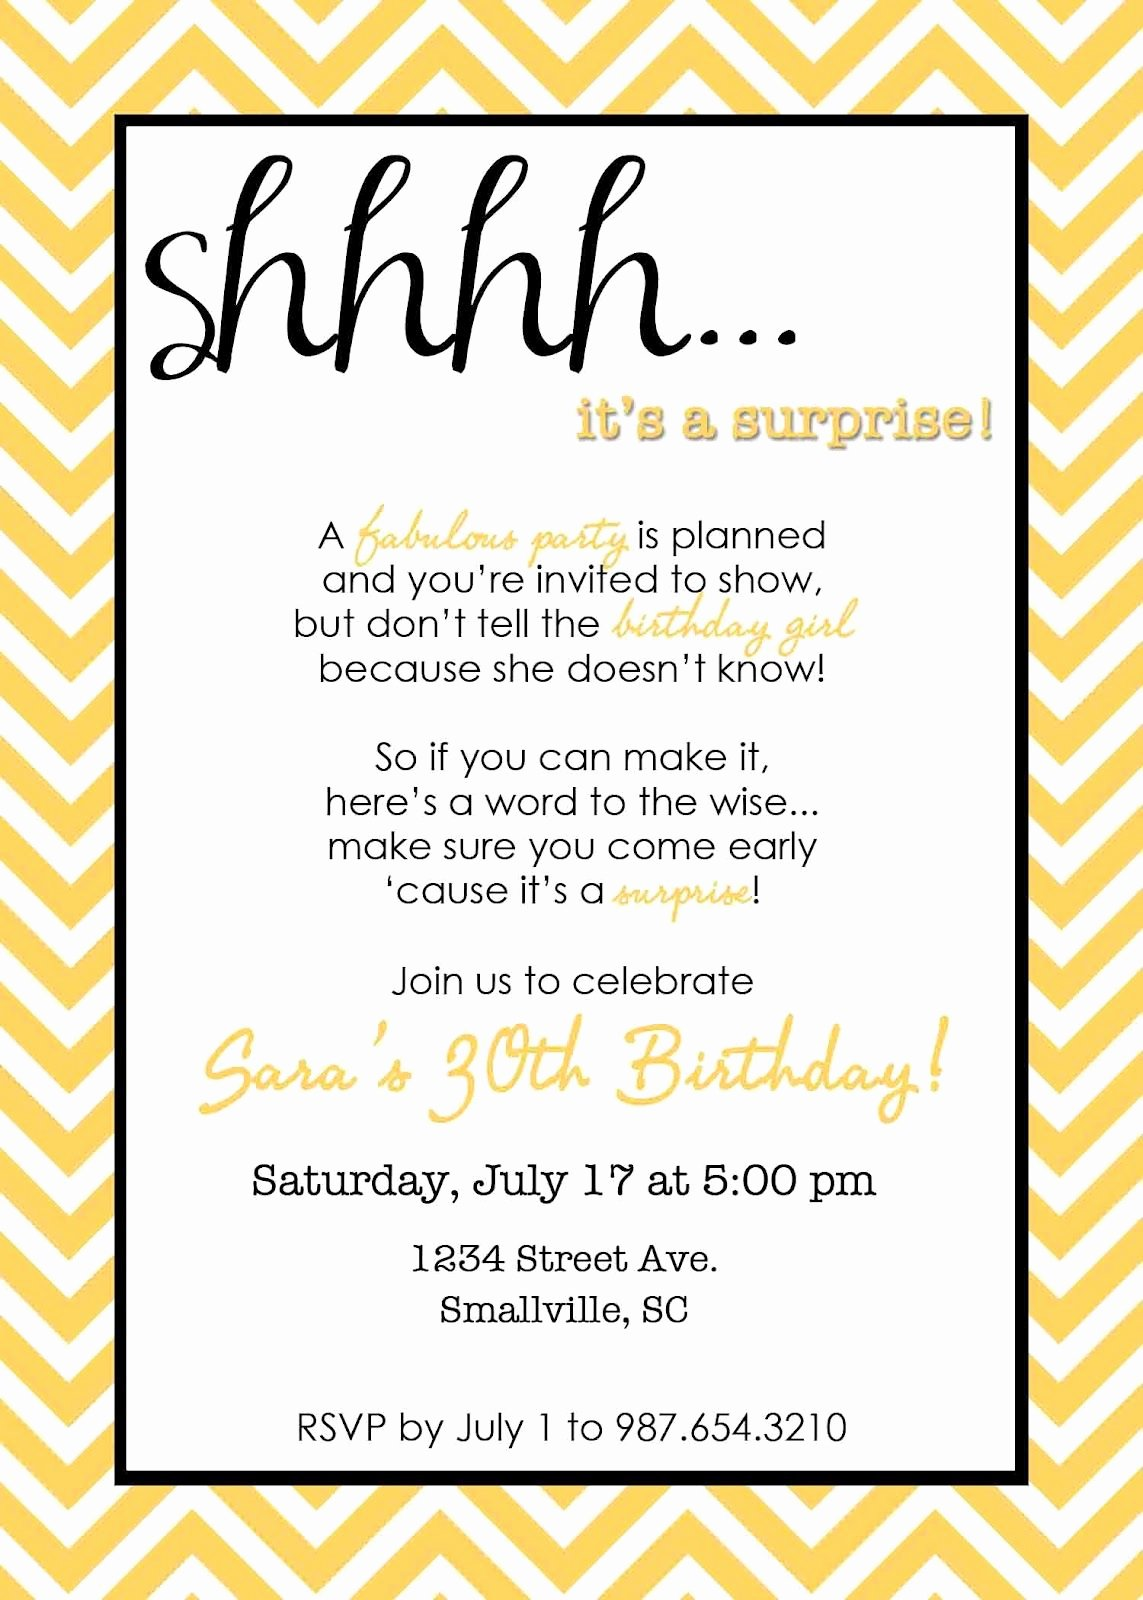 Free Surprise Party Invitations Awesome Wording for Surprise Birthday Party Invitations